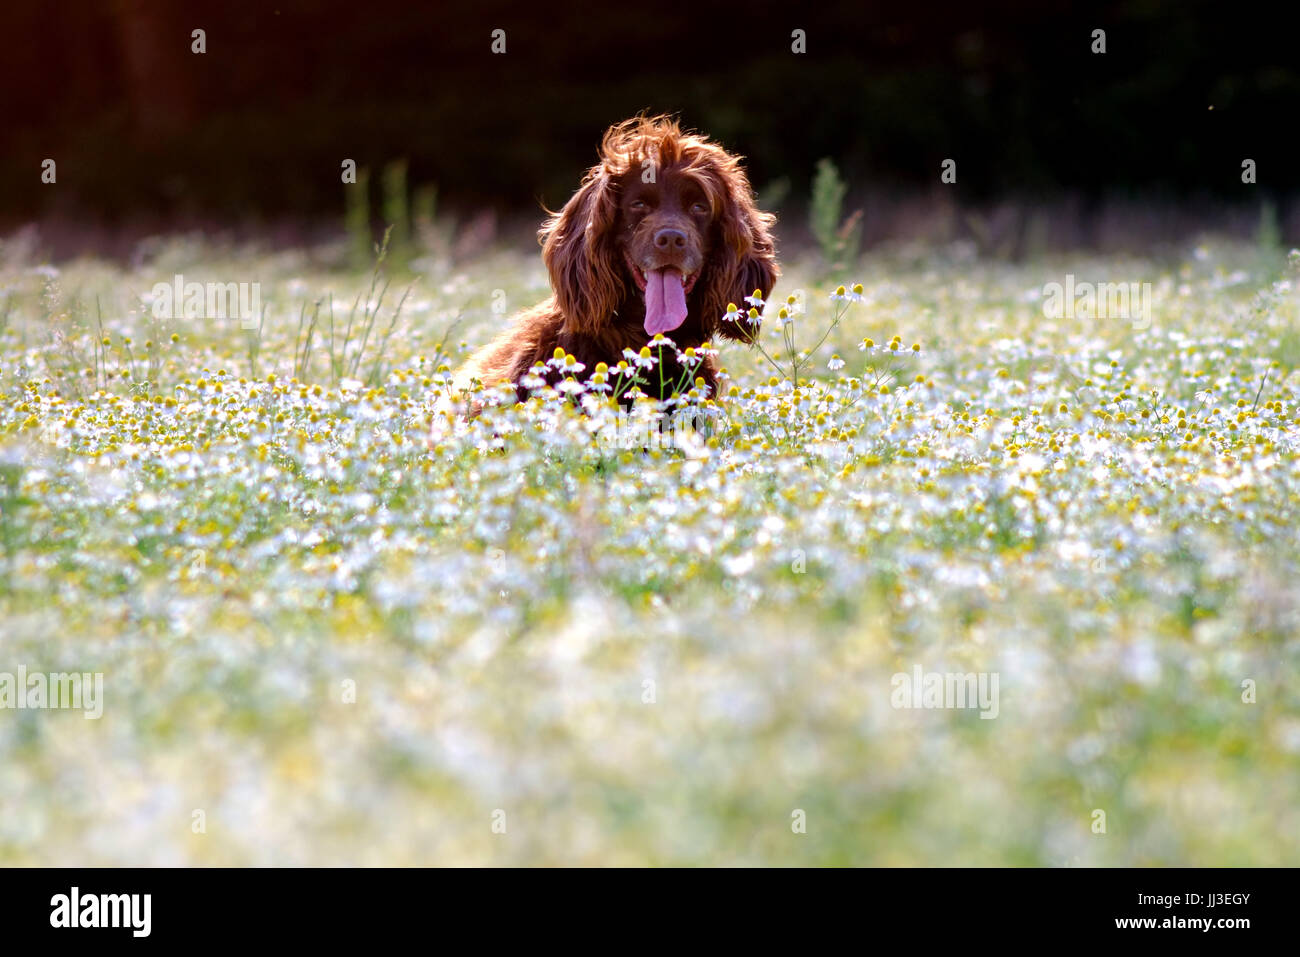 Ripe, East Sussex. 18th July 2017. Fudge, a working cocker spaniel, enjoying a warm start to the day in Ripe, East - Stock Image